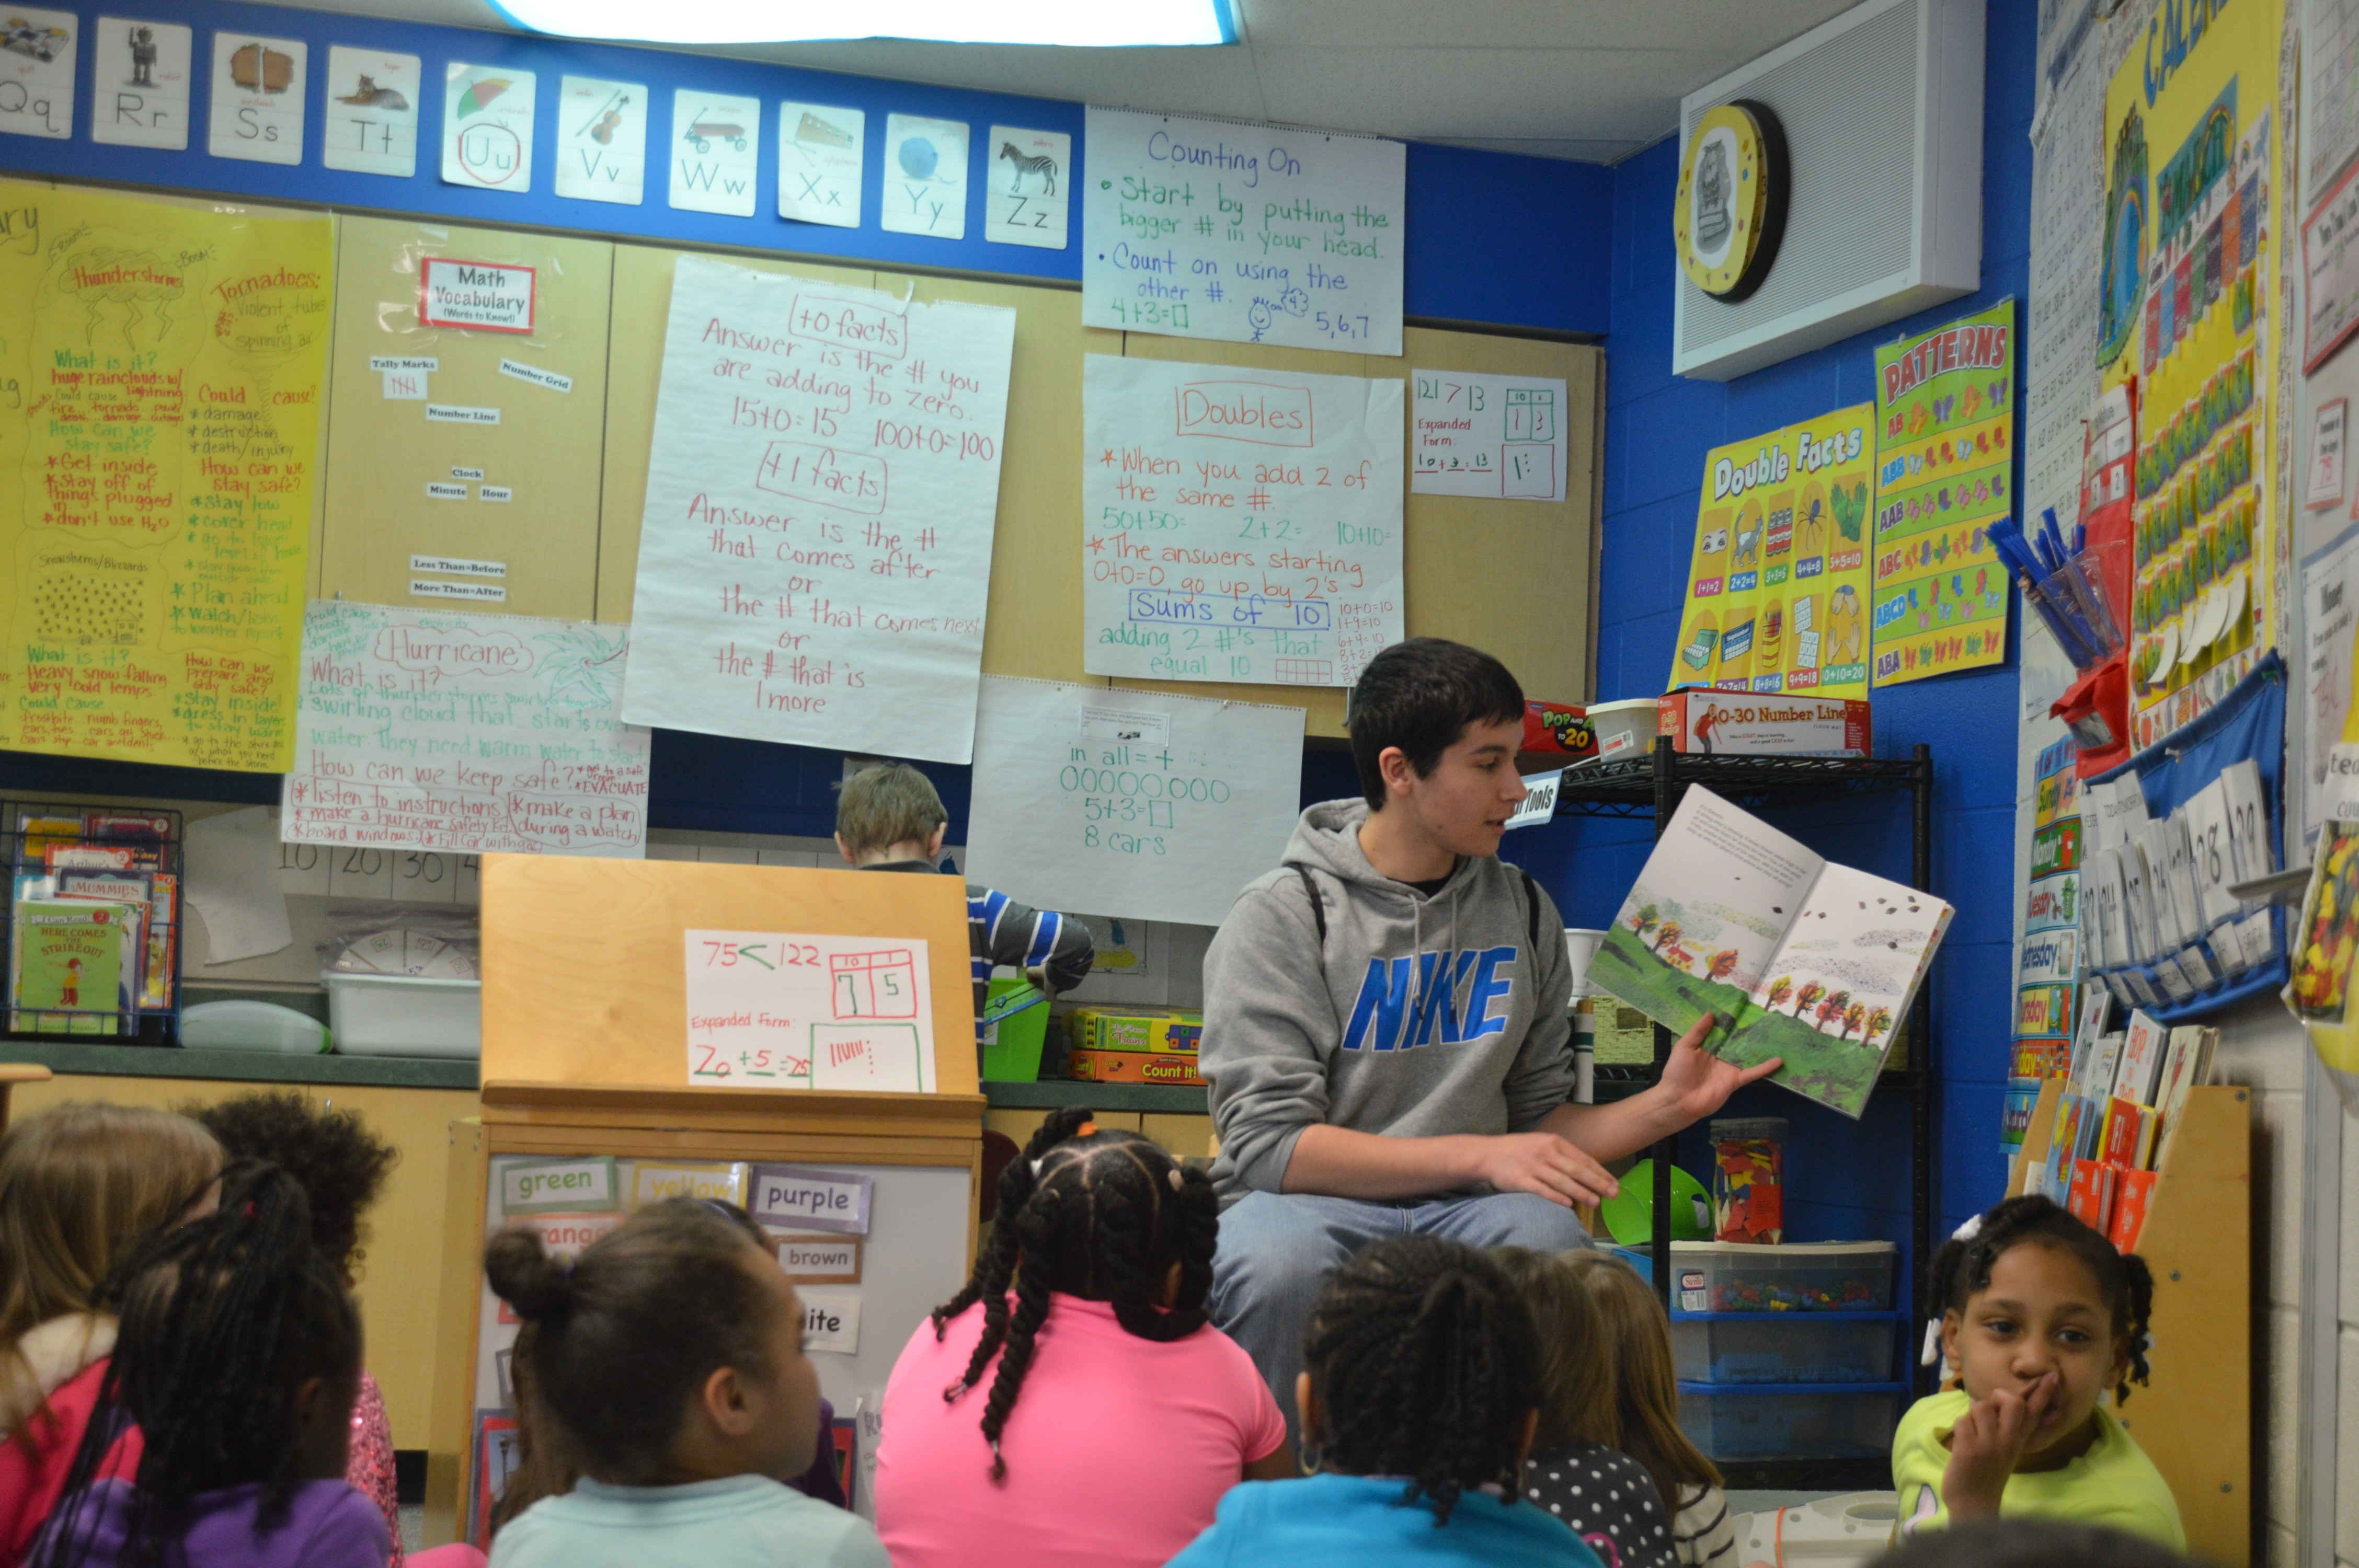 Andy Butkovitch '16 reads to students in the classroom.